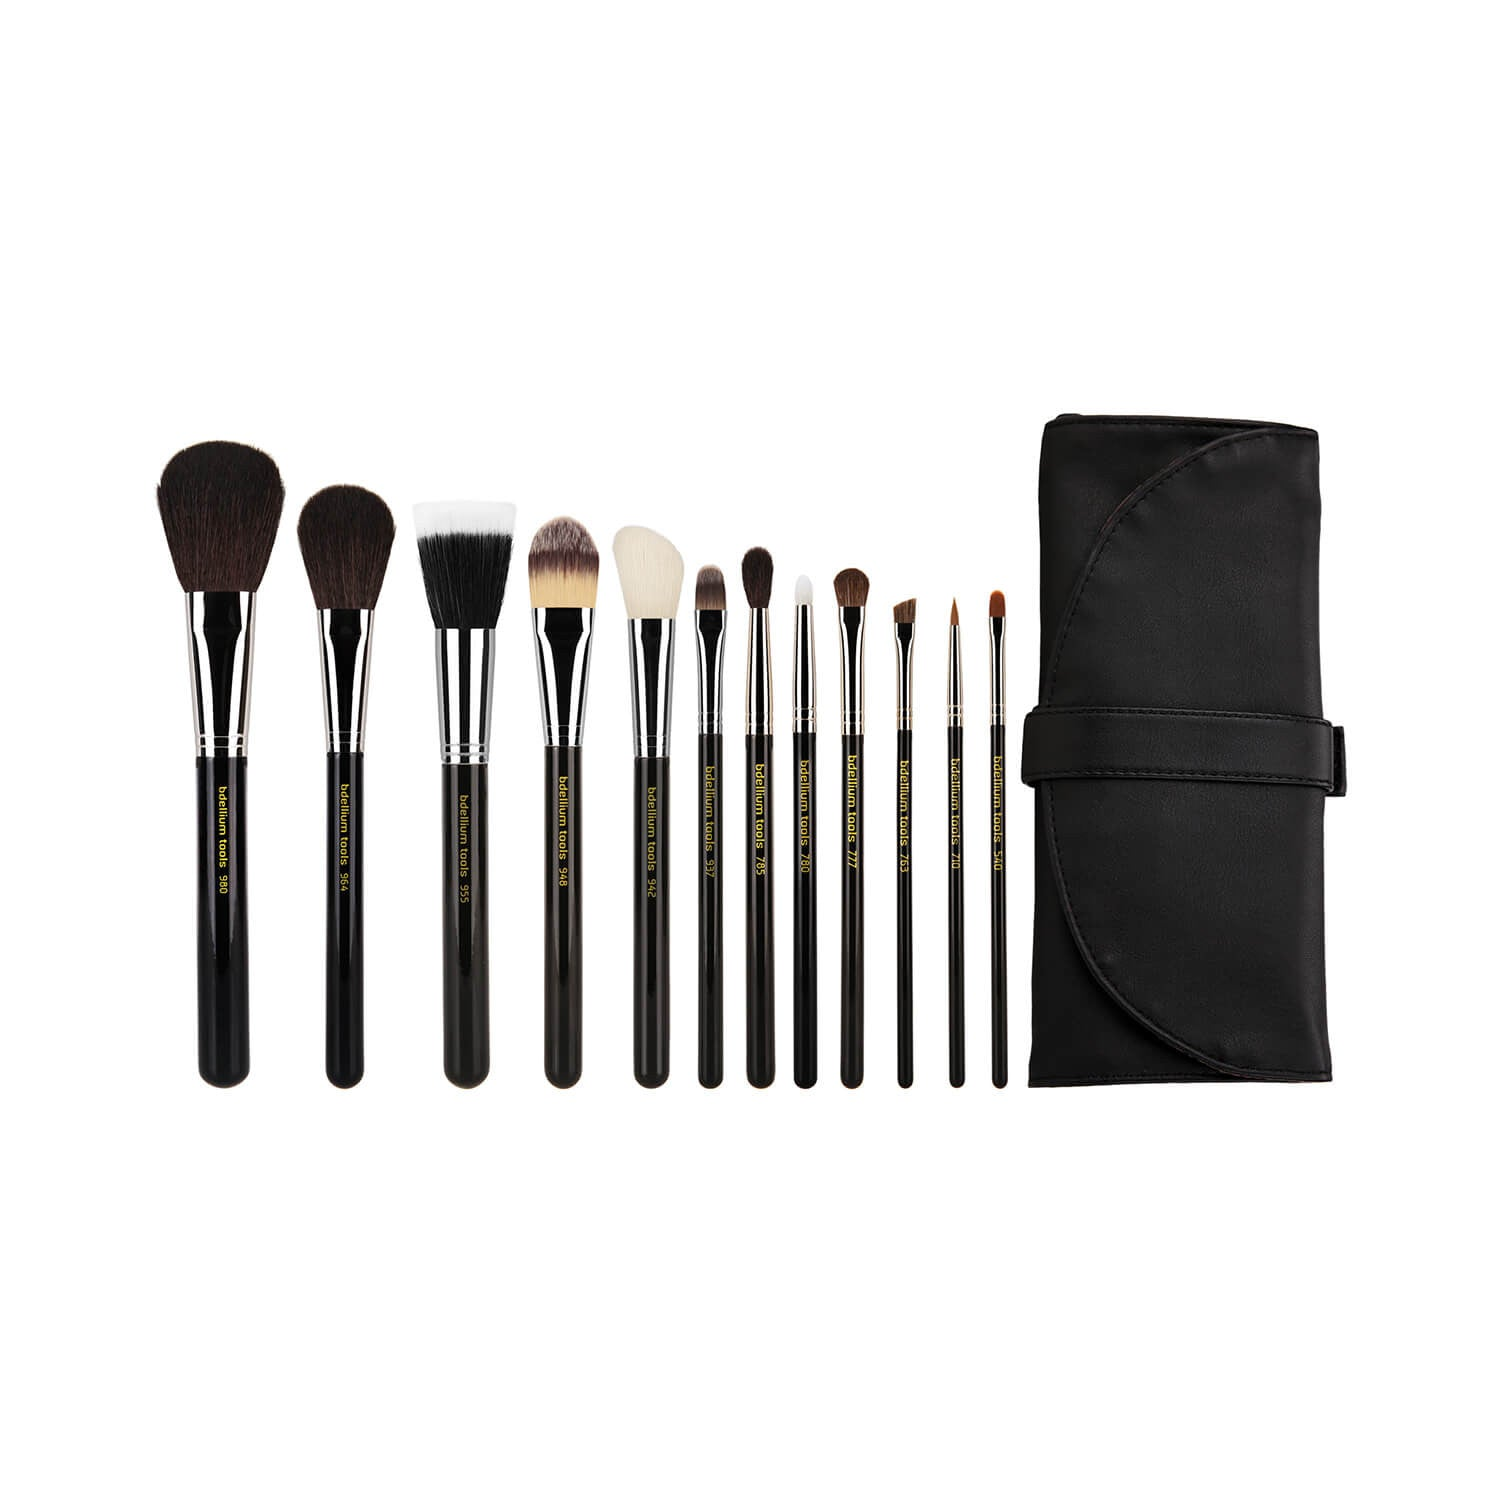 BDellium Tools Maestro Complete 12pc Brush Set with Roll-up Pouch